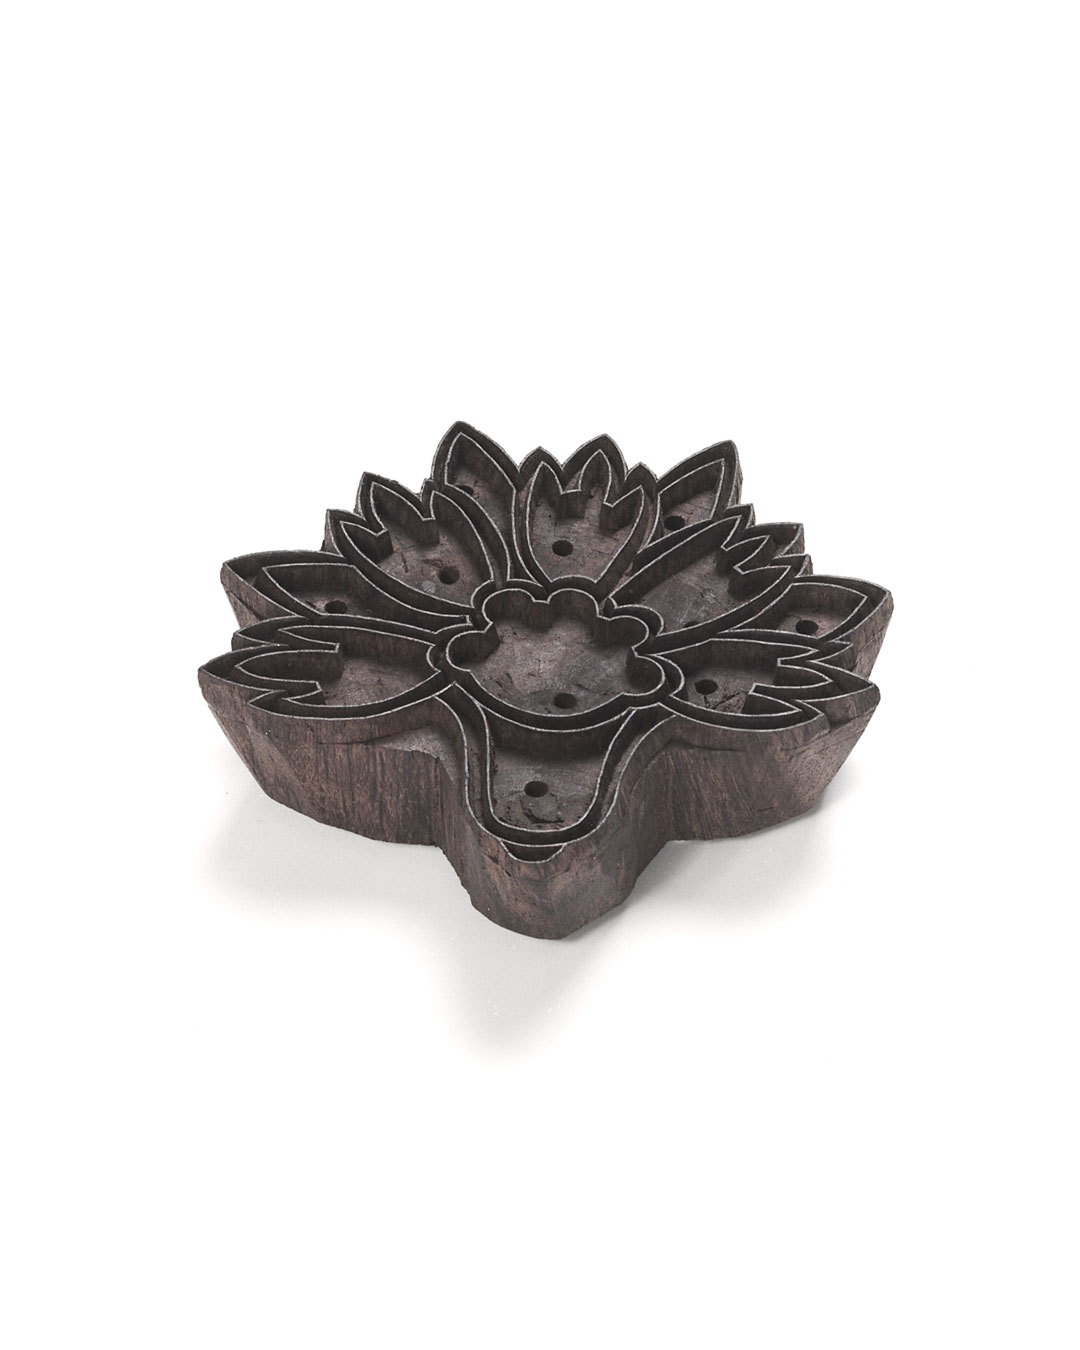 Willemijn de Greef, Spakenburg 1, 2009, brooch; teak wood, silver, paint, 150 x 140 x 35 mm, €750